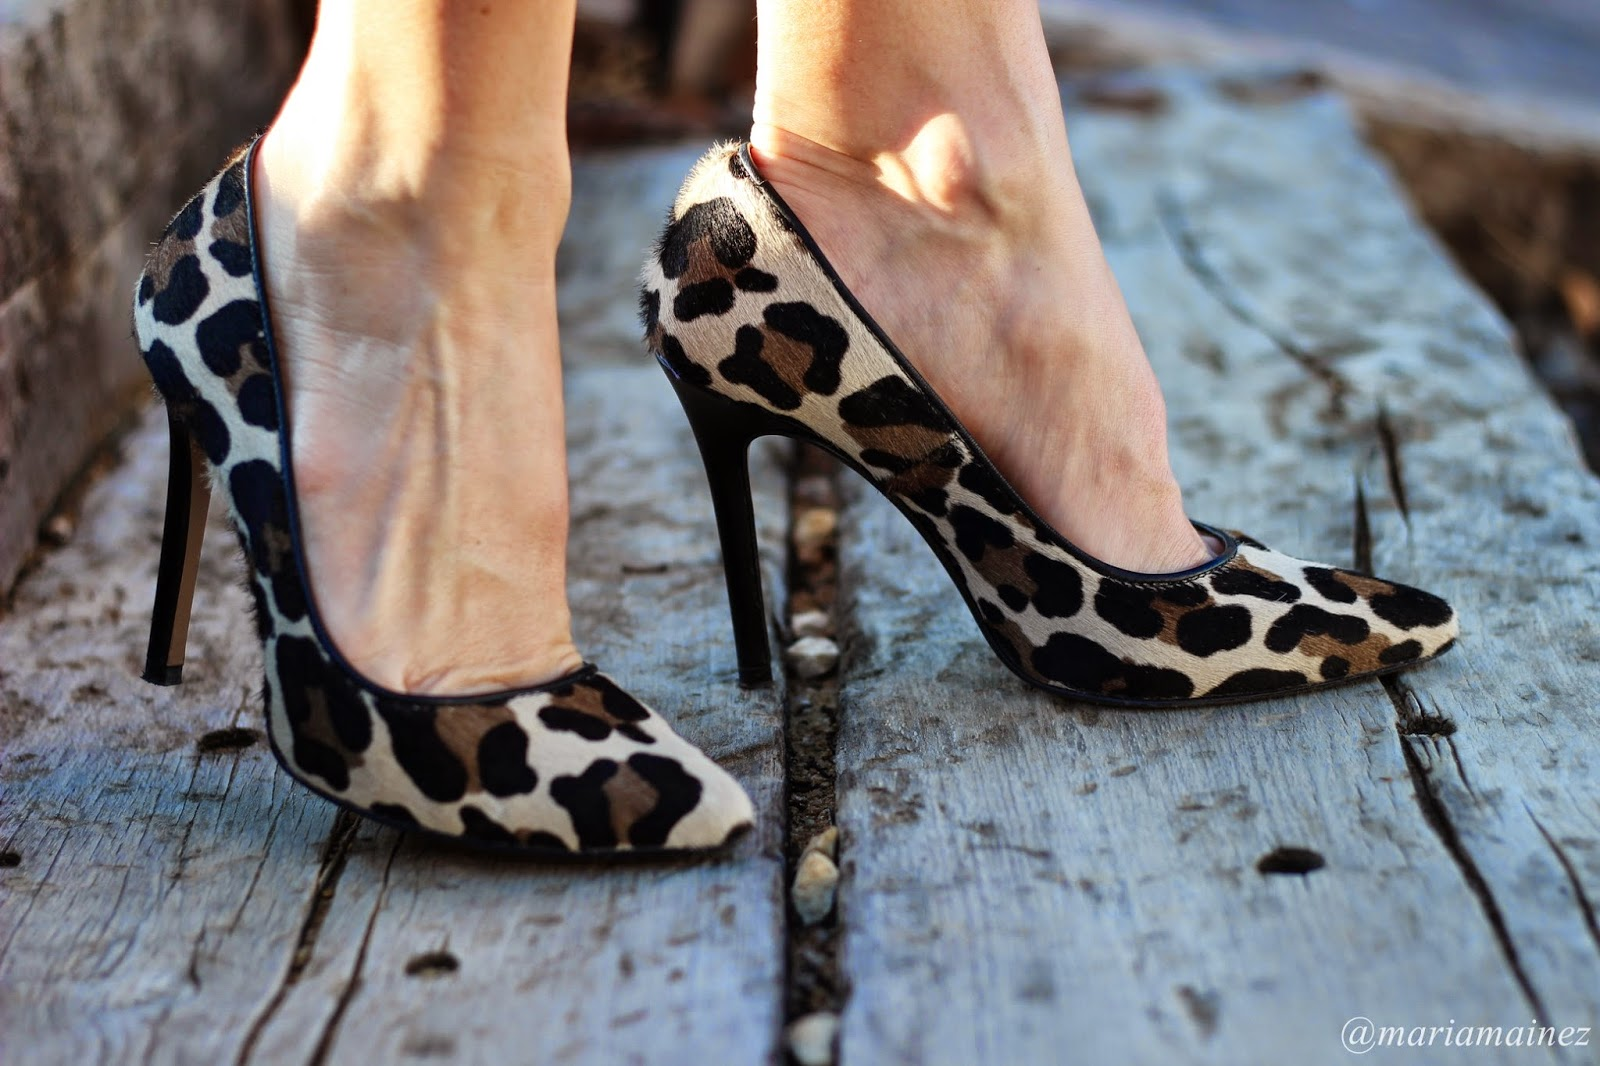 Gabardina verano - Sheinside - Stilettos leopardo - Fashion blogger - Gafas Chanel